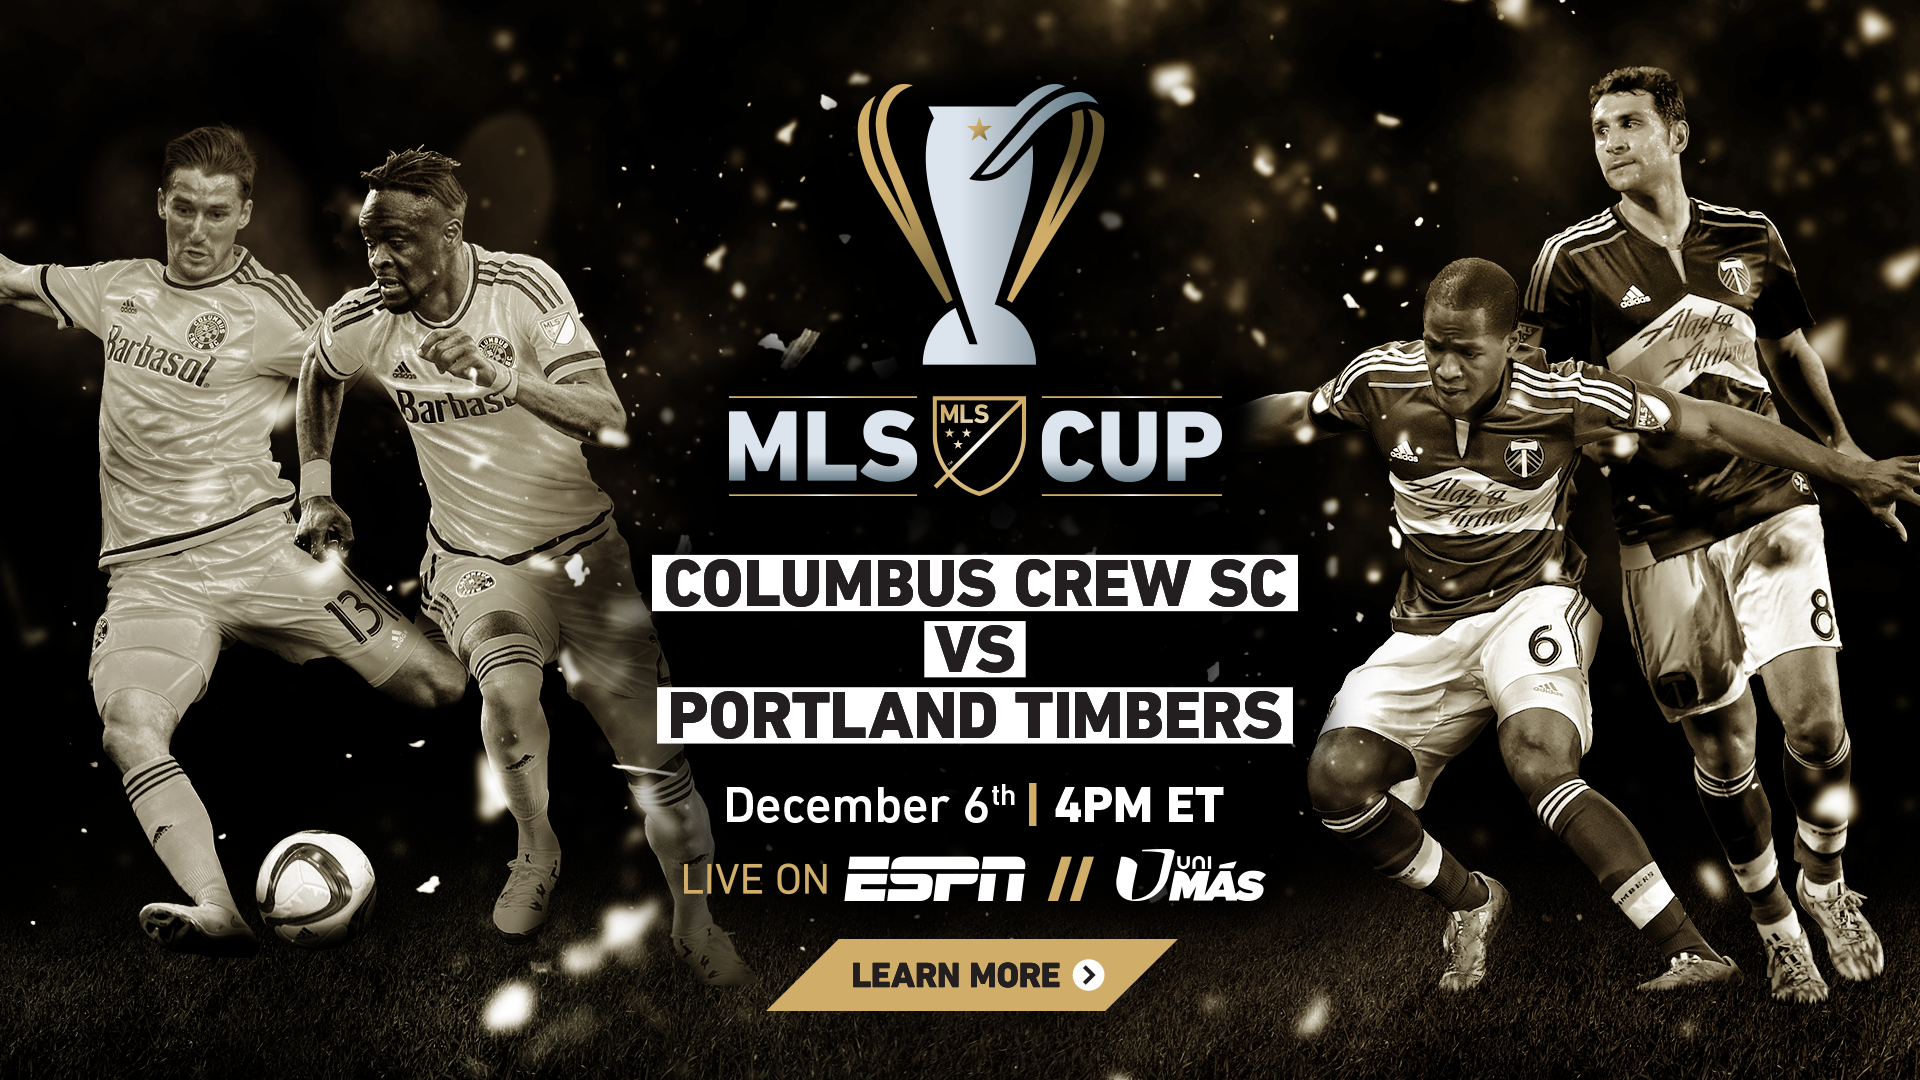 MLS CUP 2015 Tune-in campaign and artwork